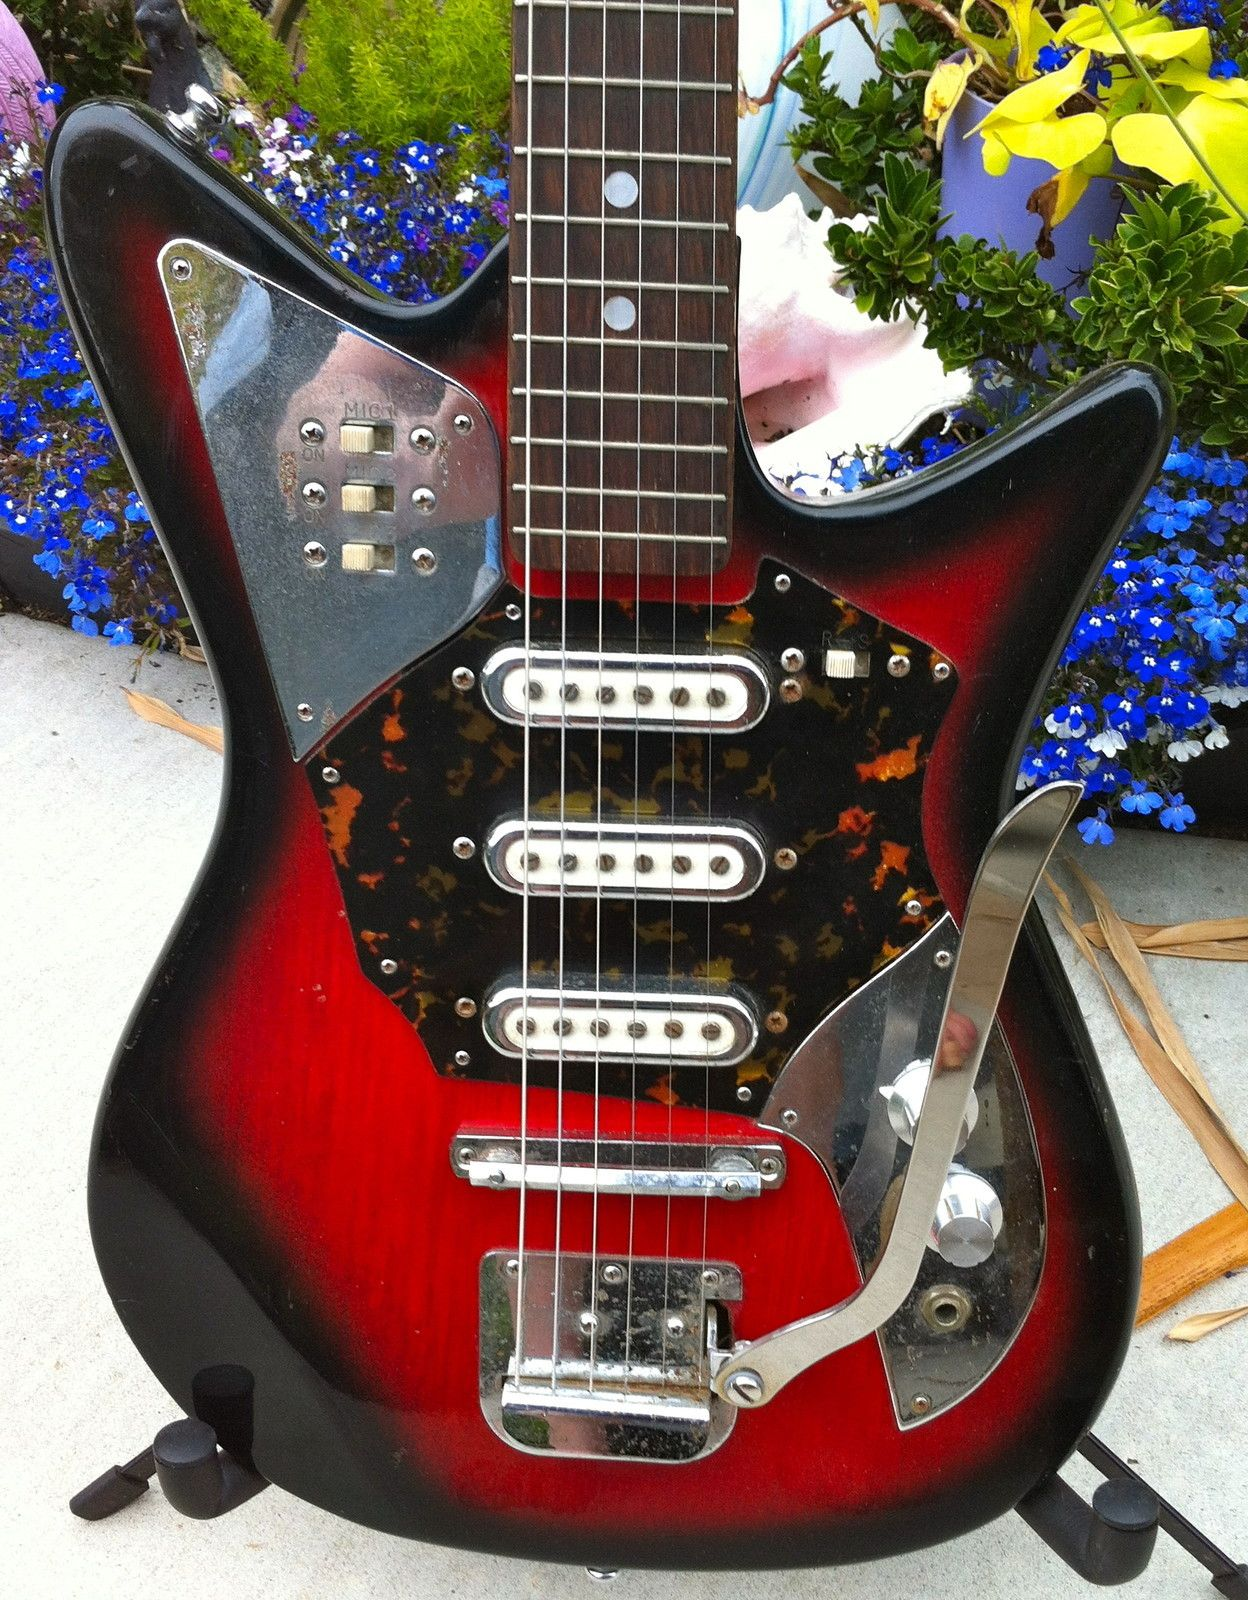 d55be24c6de3086995f5dcb66f9eed6e vintage 1960's audition electric guitar by teisco, japan vintage Kingston Guitars 50s at gsmx.co